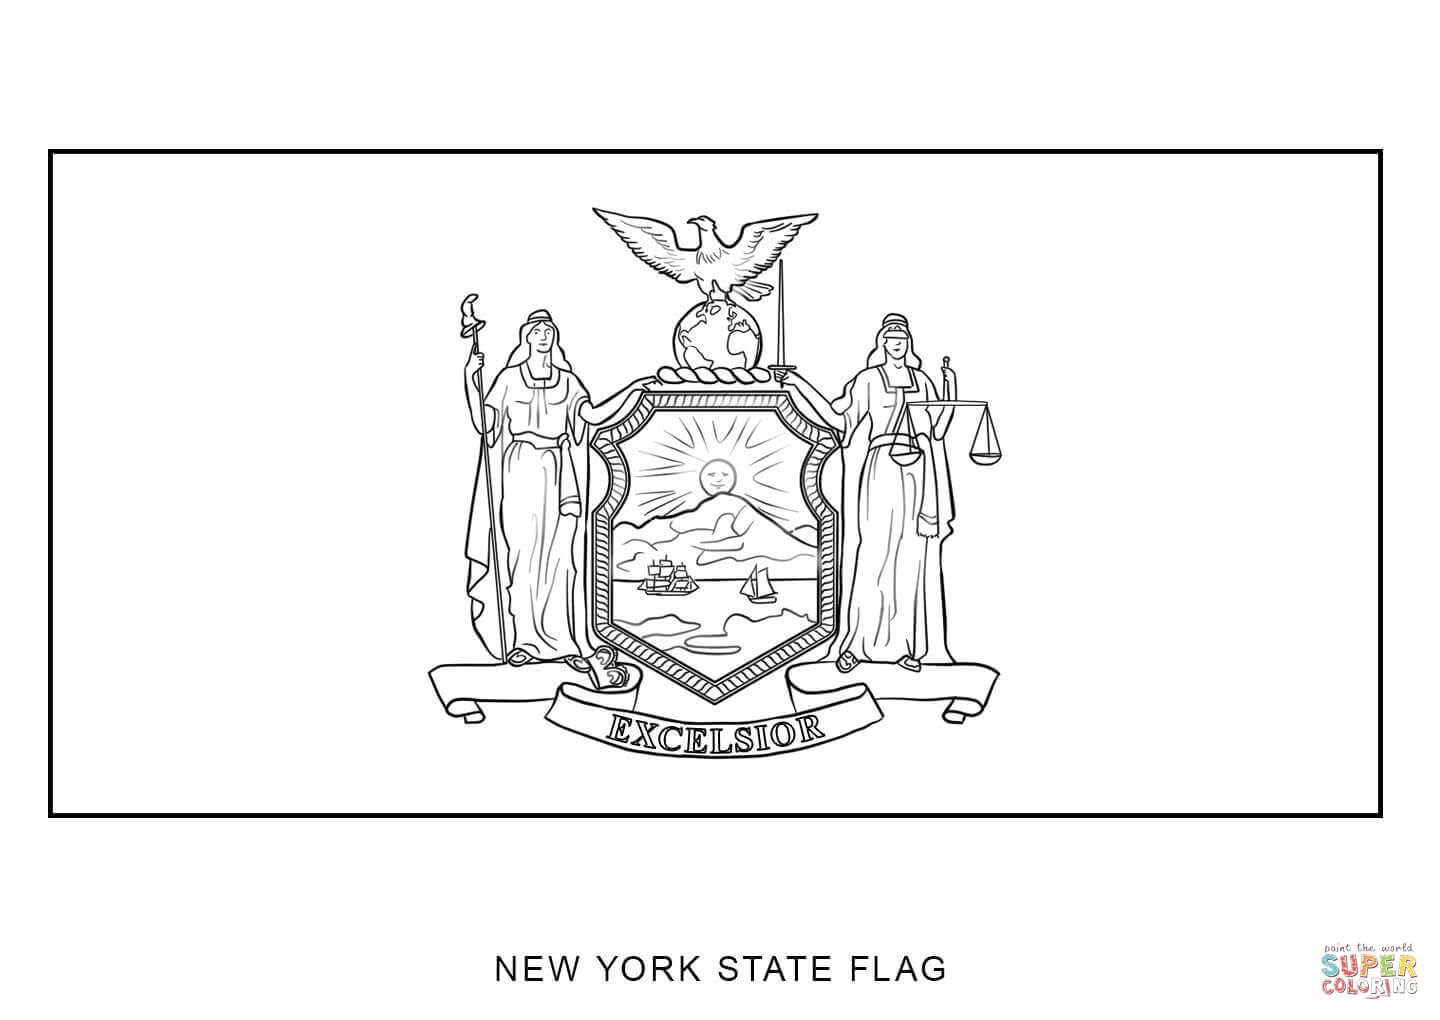 Coloring Books For Adults New Yorker : New York State Flag Coloring Page AZ Coloring Pages